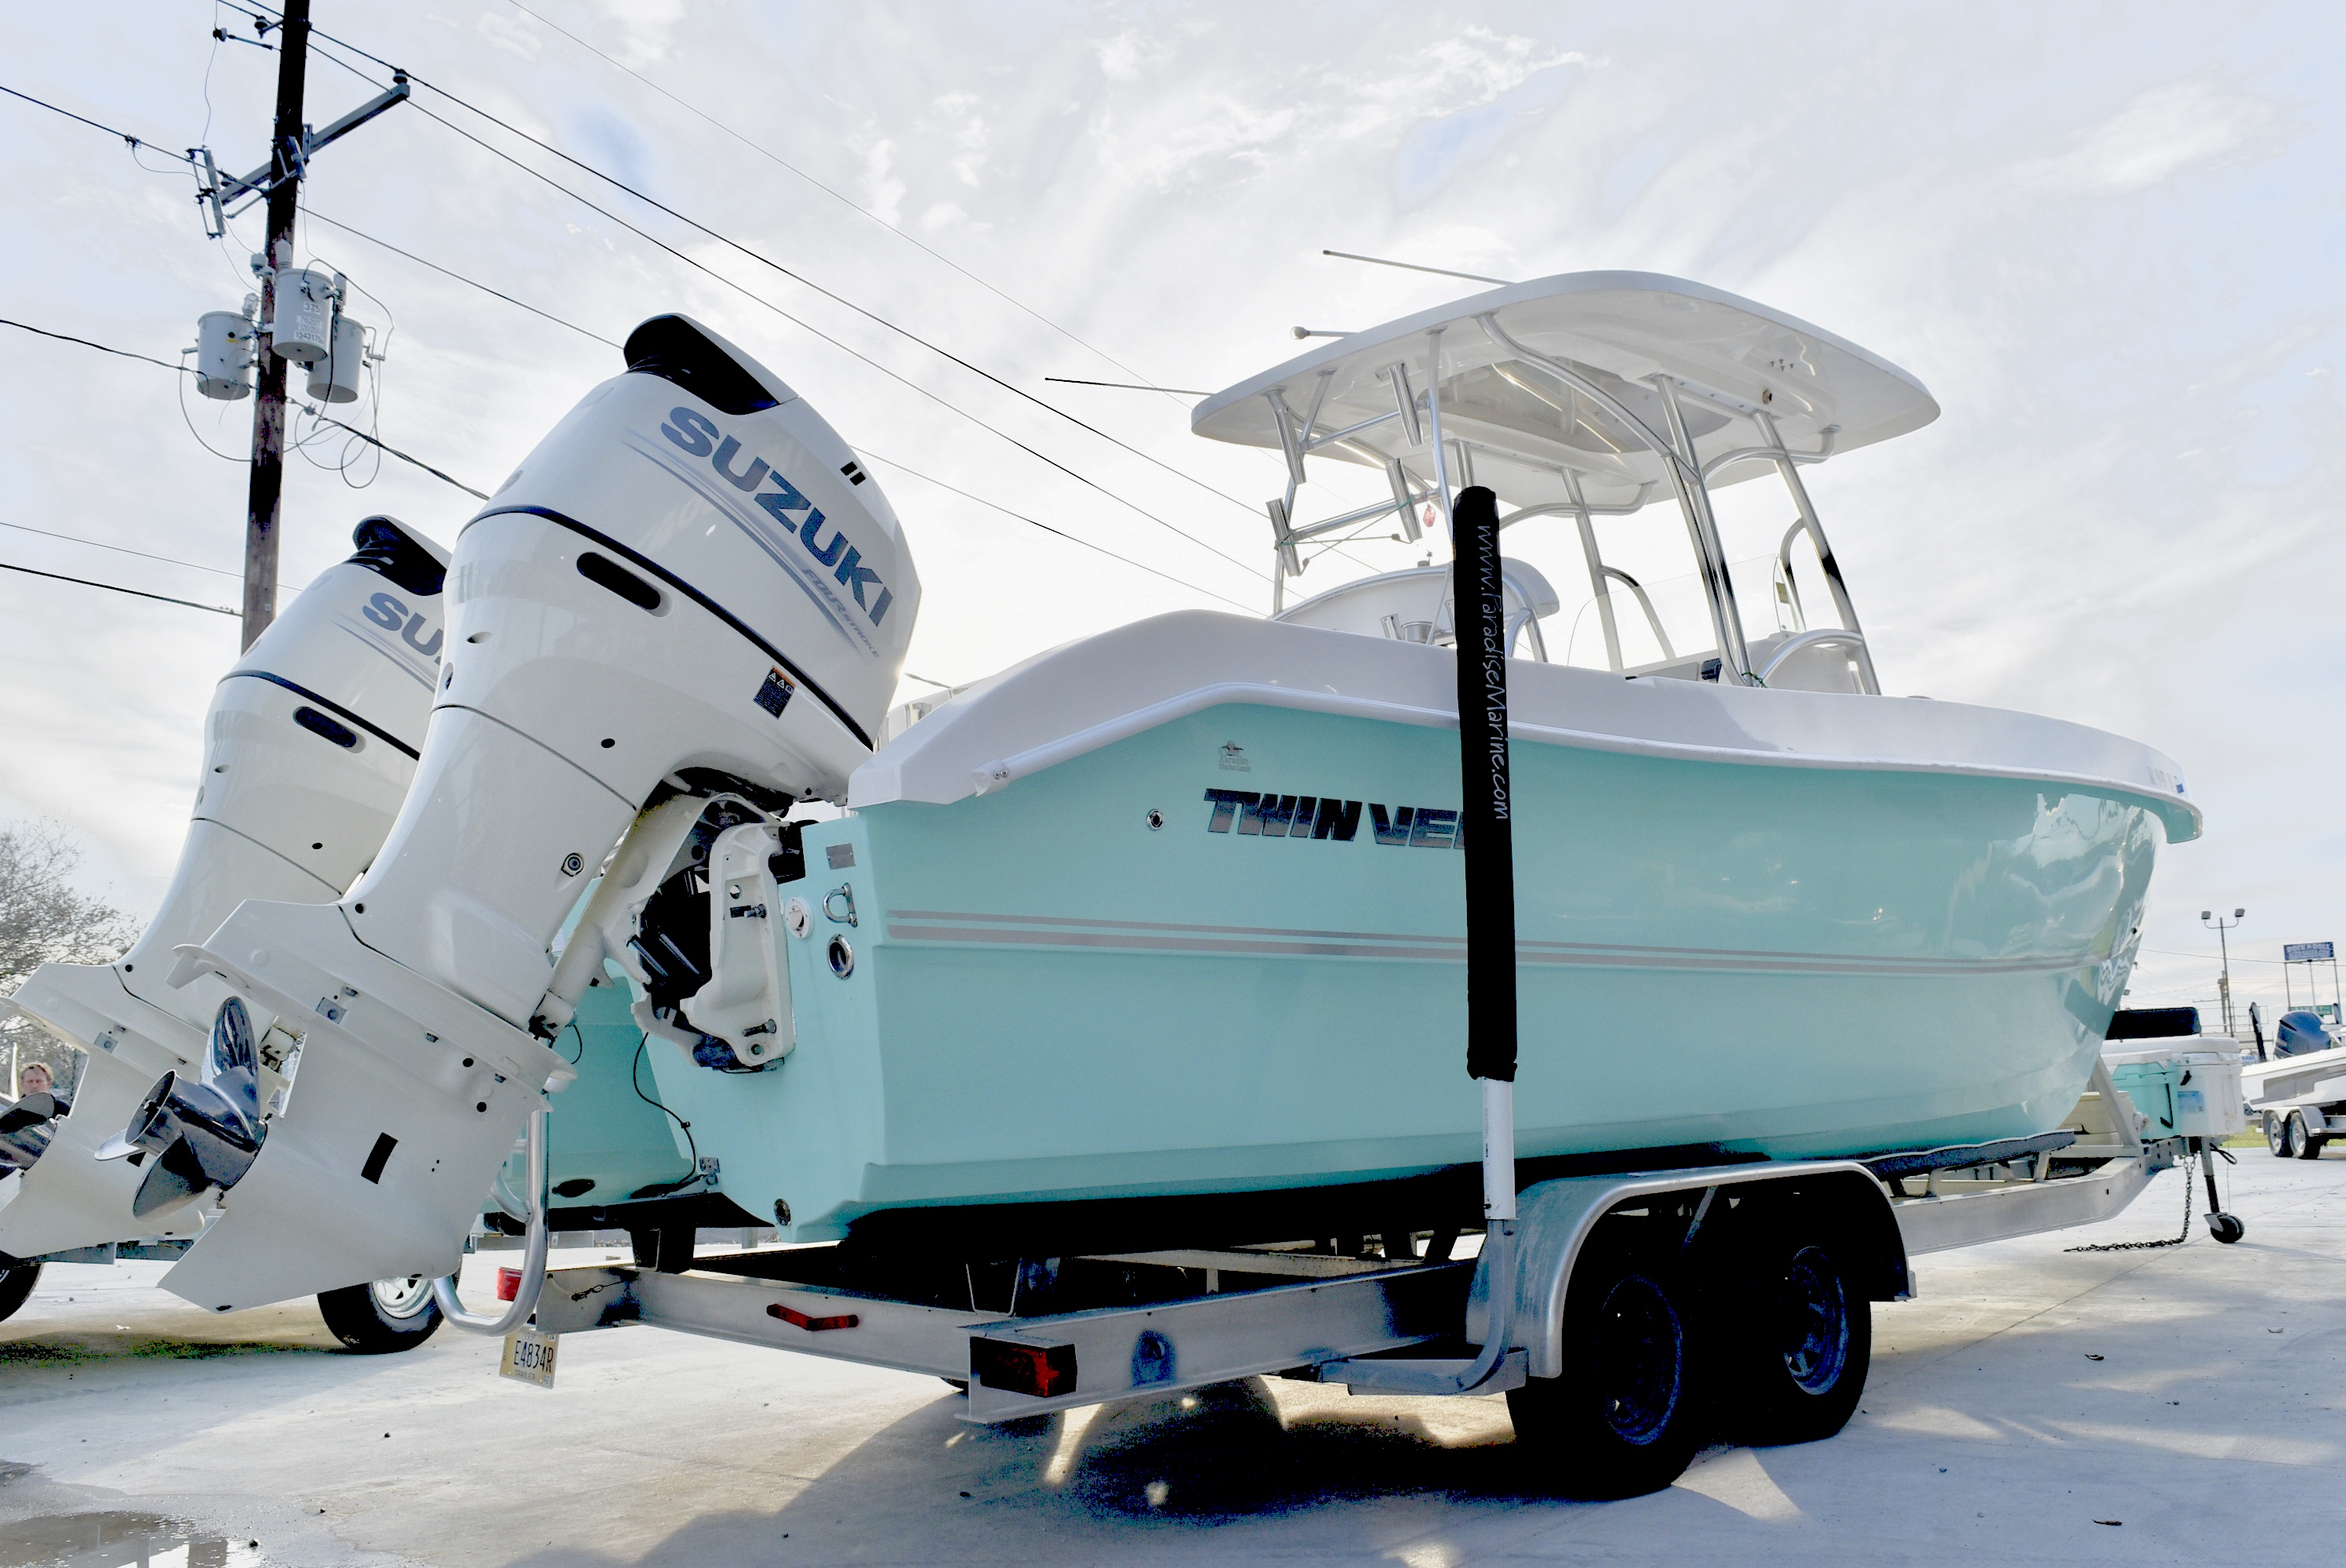 2018 Twin Vee boat for sale, model of the boat is 260 CC GF & Image # 15 of 18